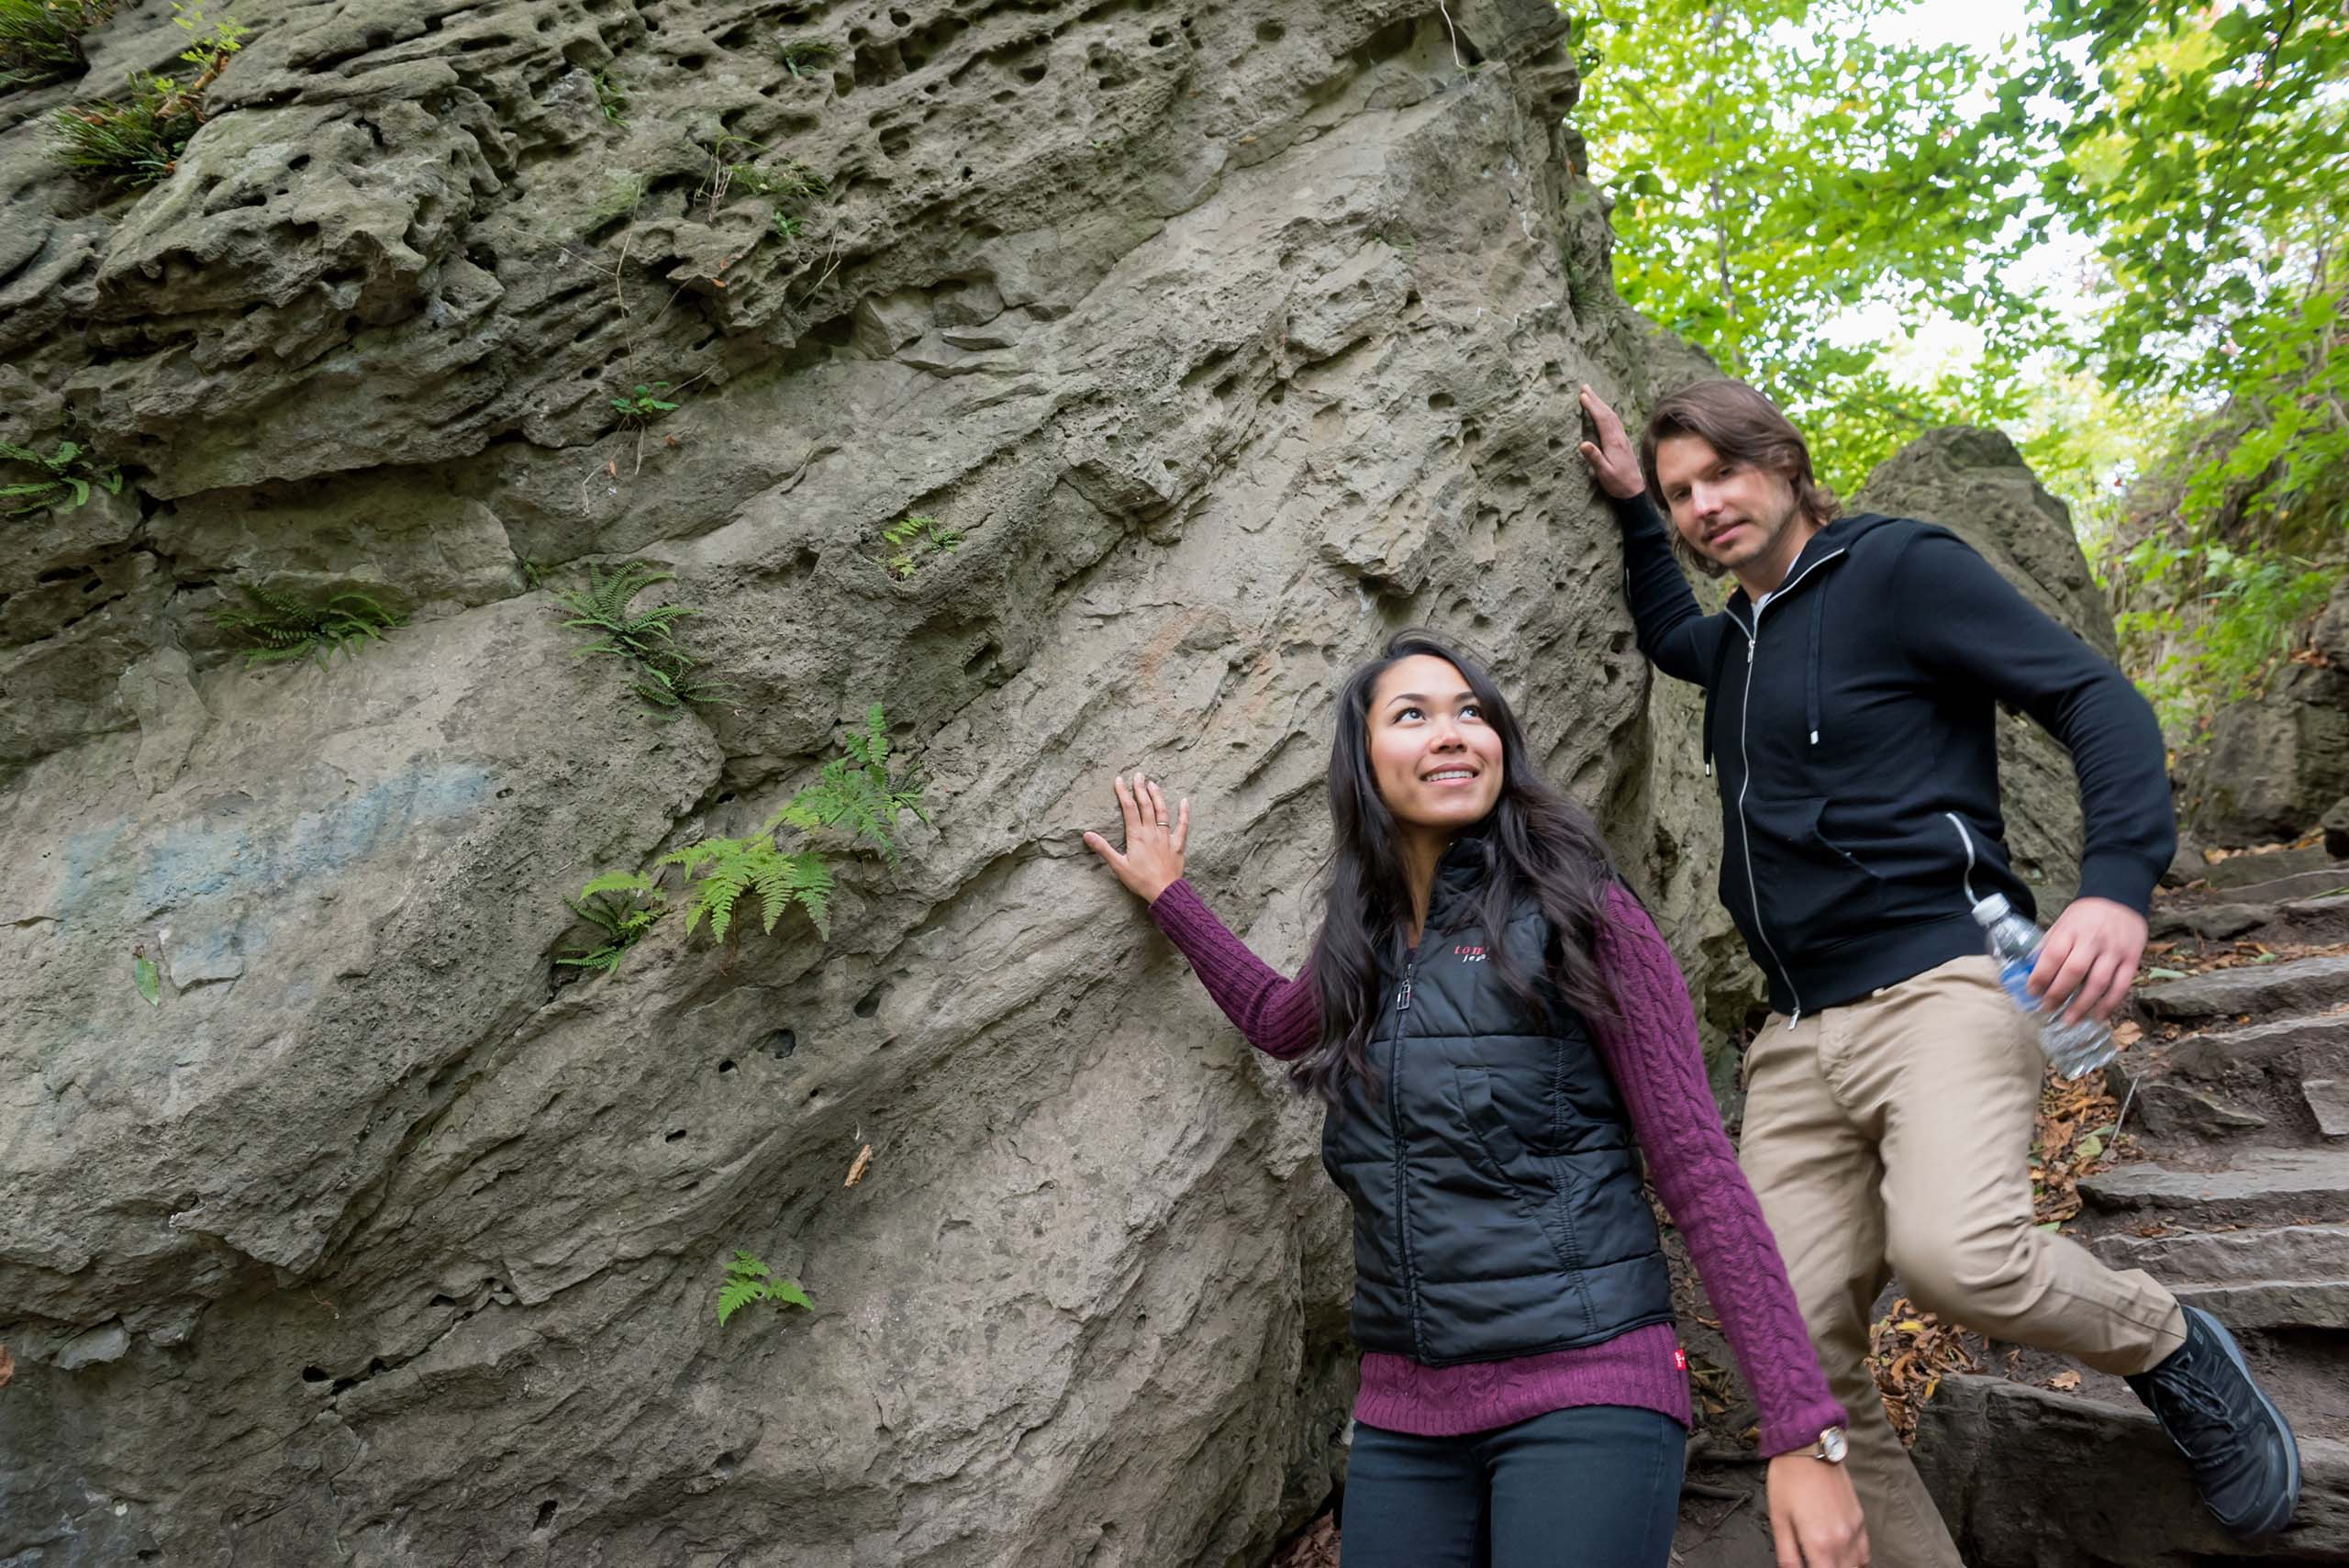 Niagara Parks Reminds Trail Users of the Importance of Safety